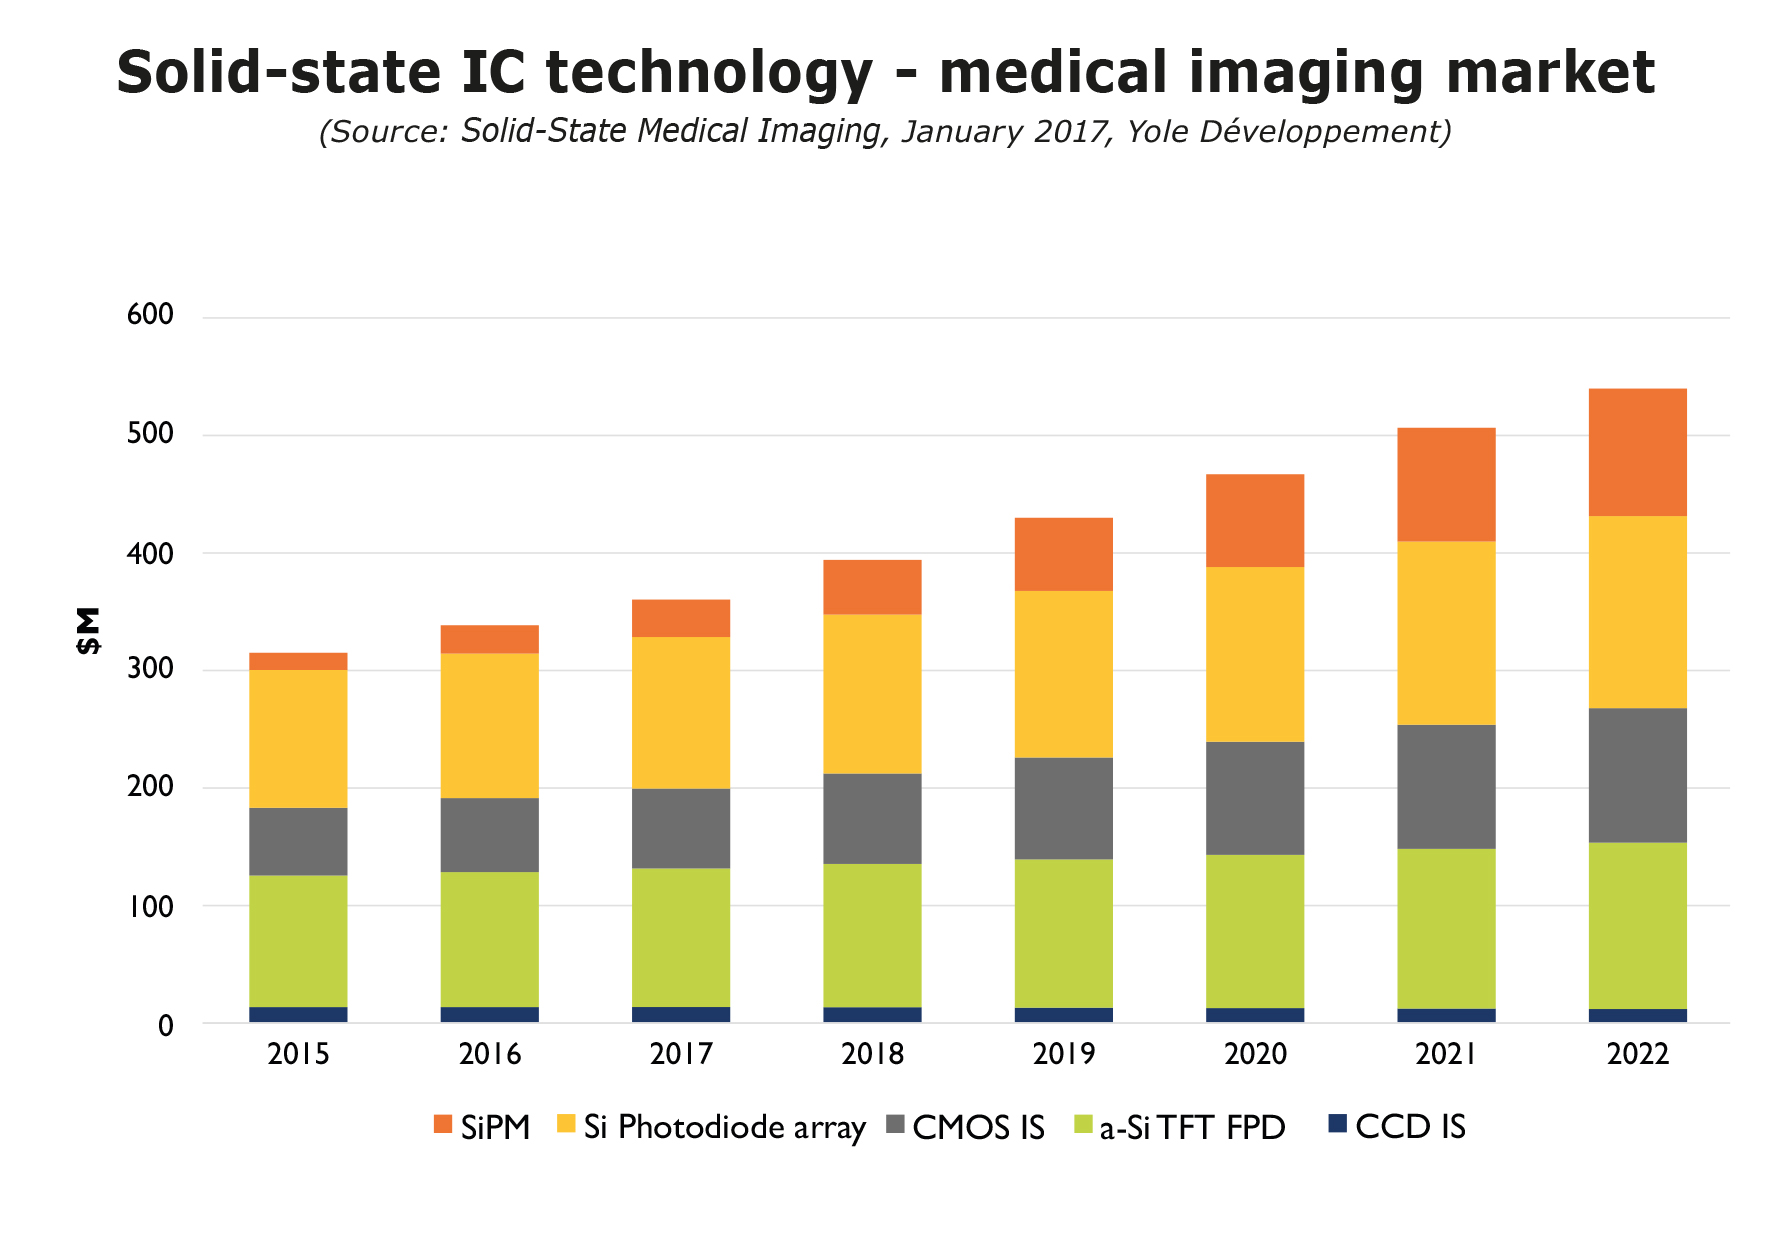 Solid-state IC technology medical imaging market Yole Developpement